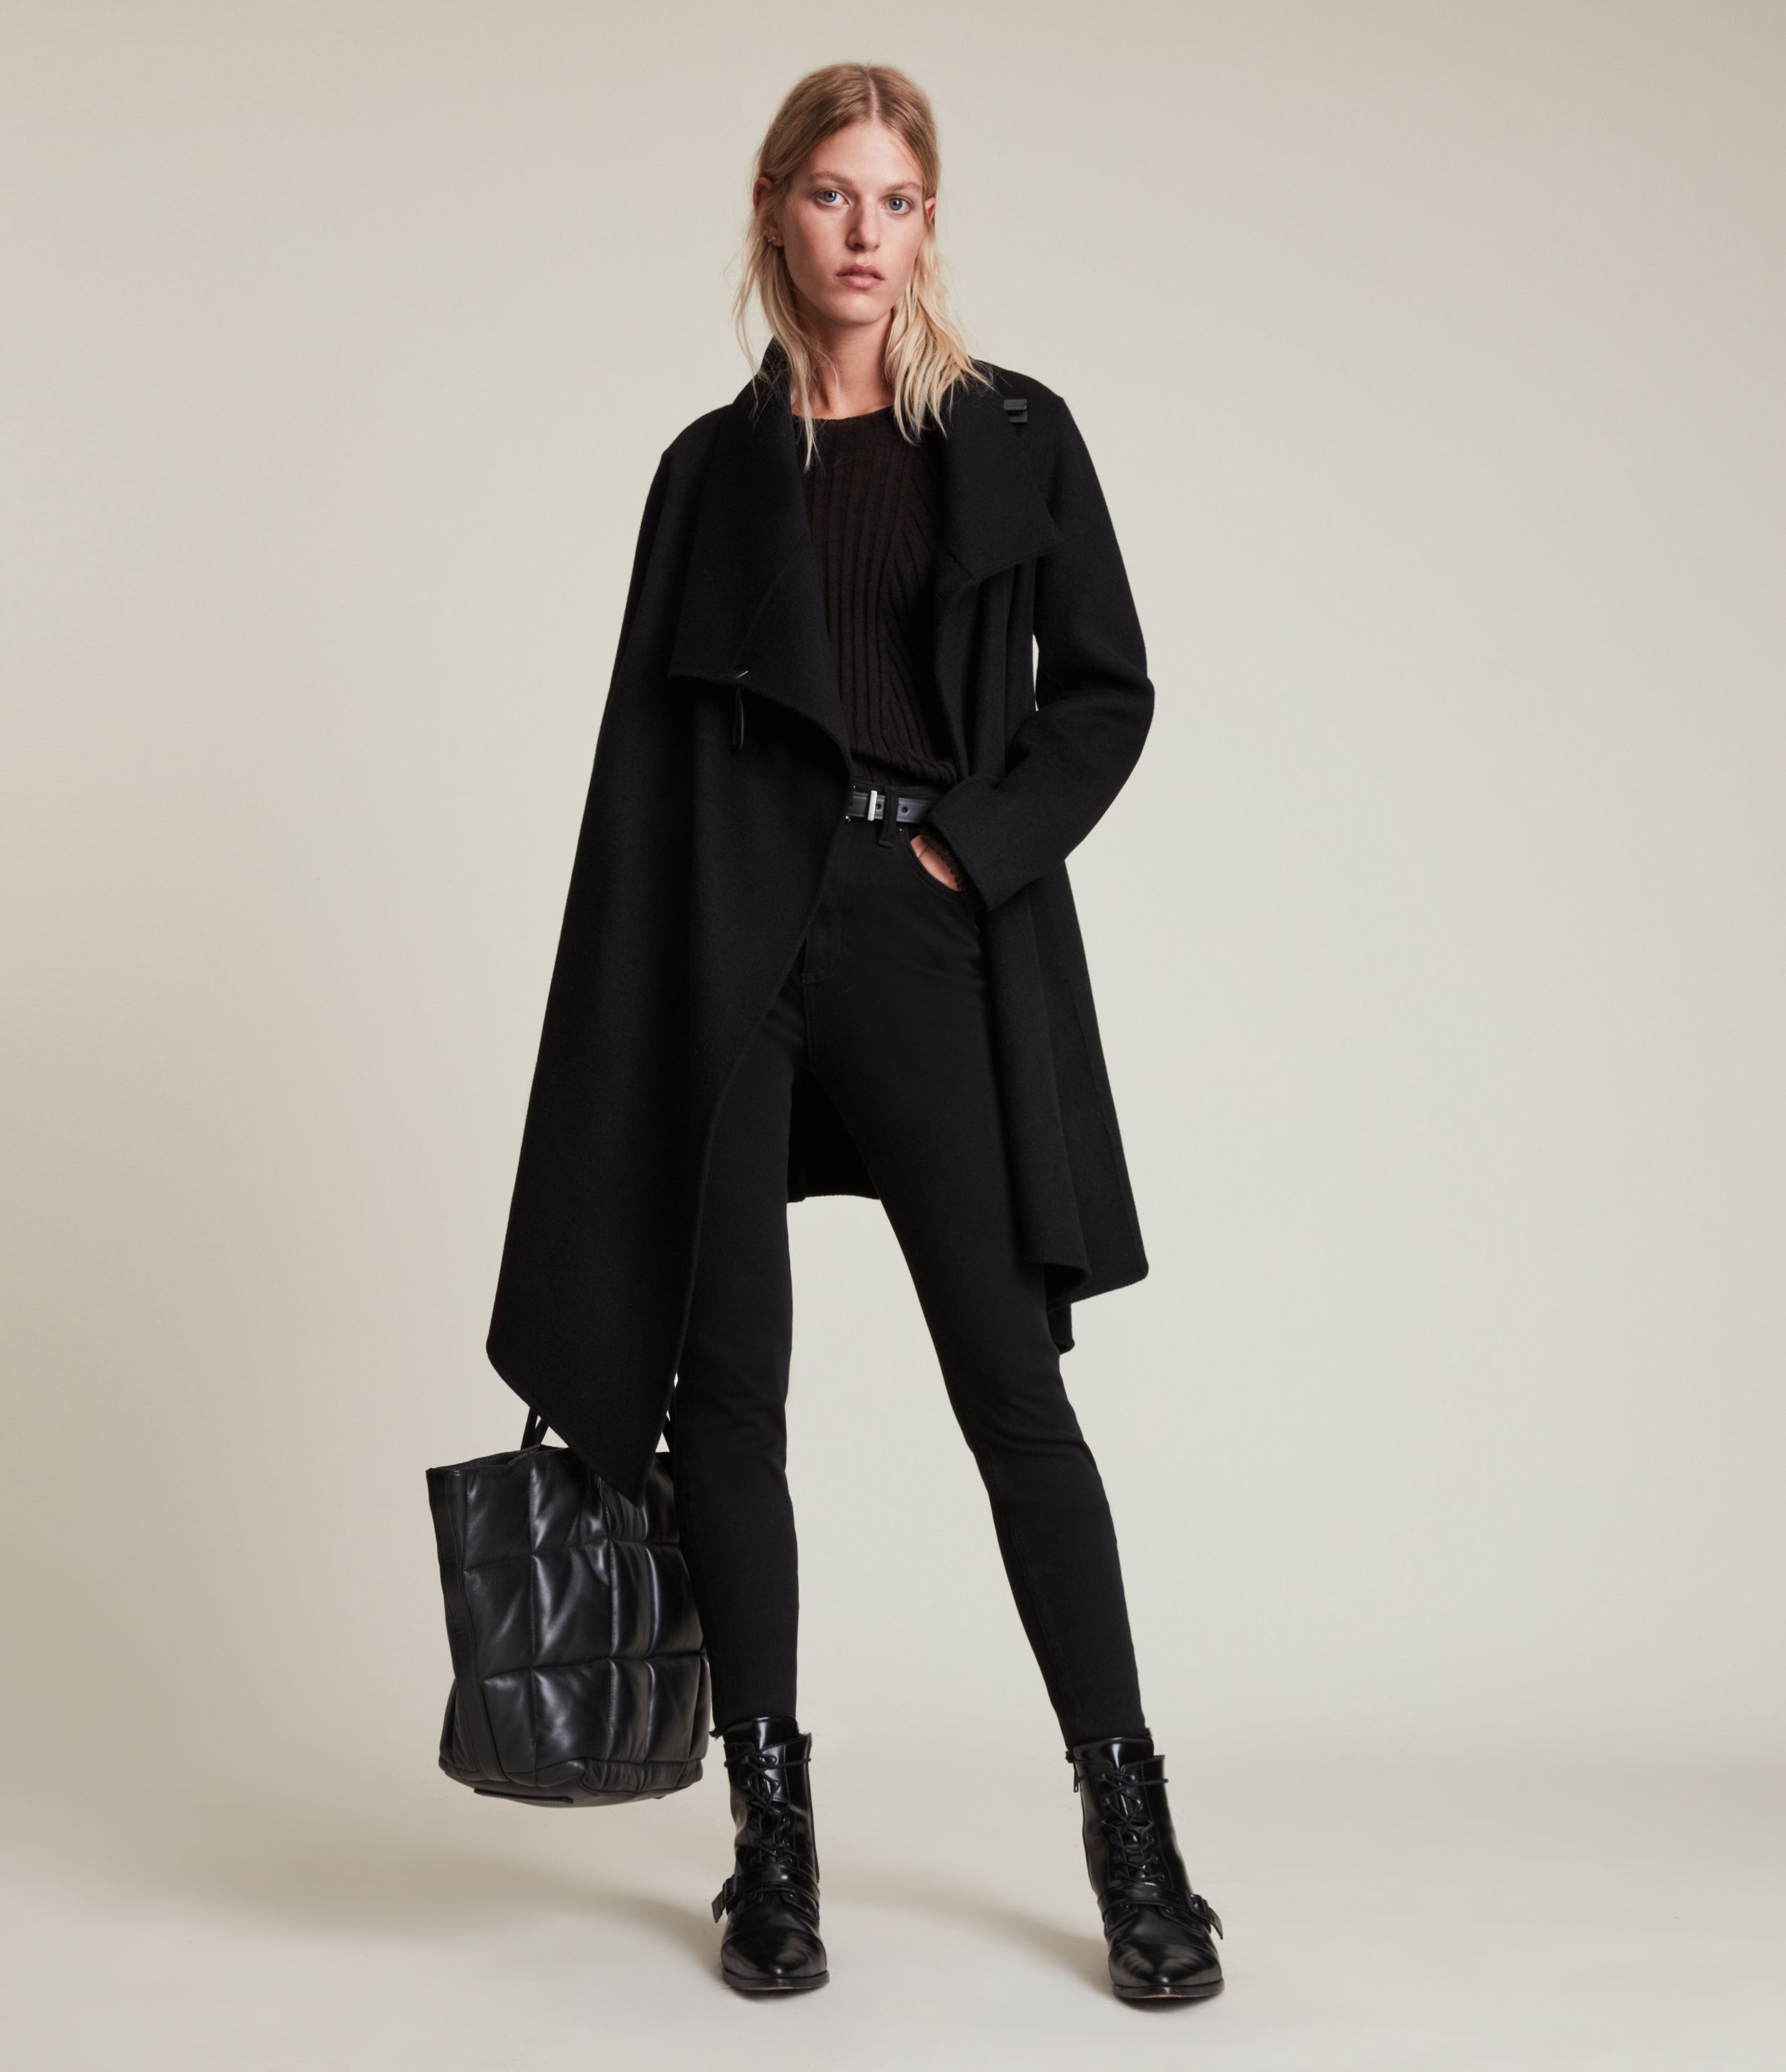 AllSaints Women's Regular Fit Wool Asymmetric Monument Eve Coat, Black, Size: 4